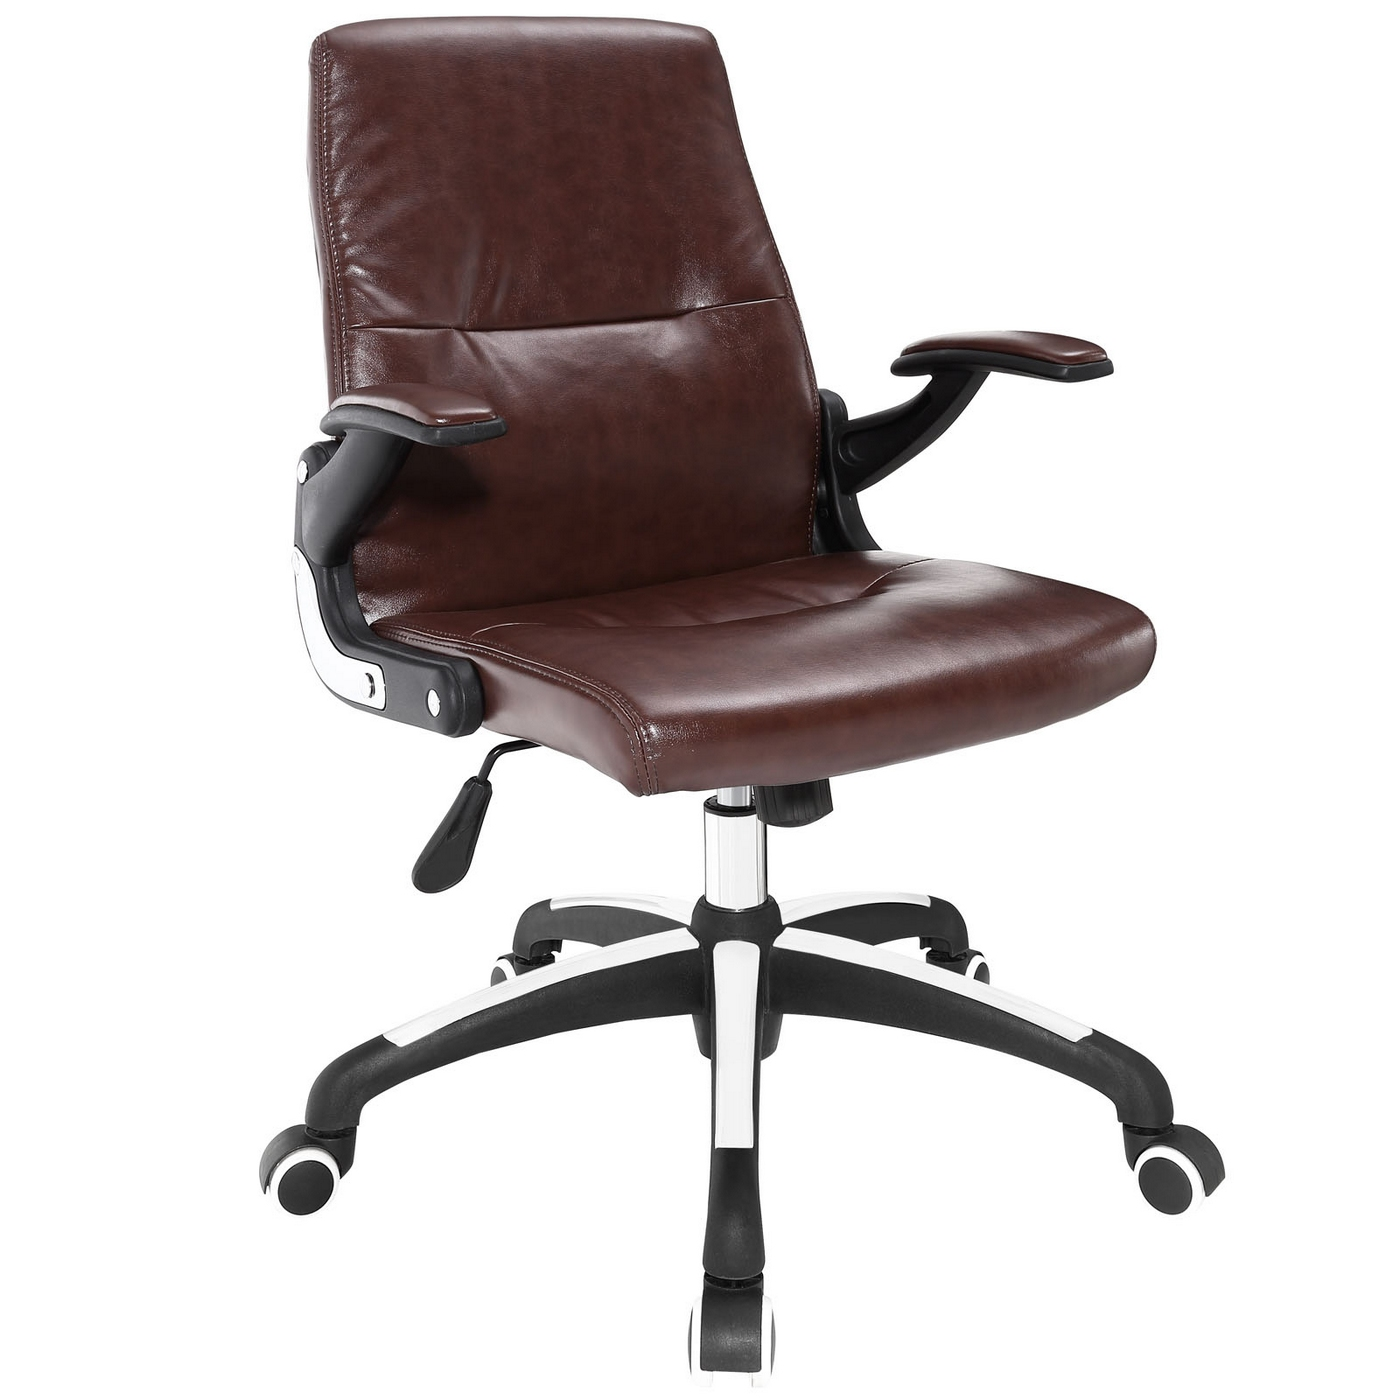 upholstered computer chair overstuffed chairs with ottomans premier modern high back vinyl office